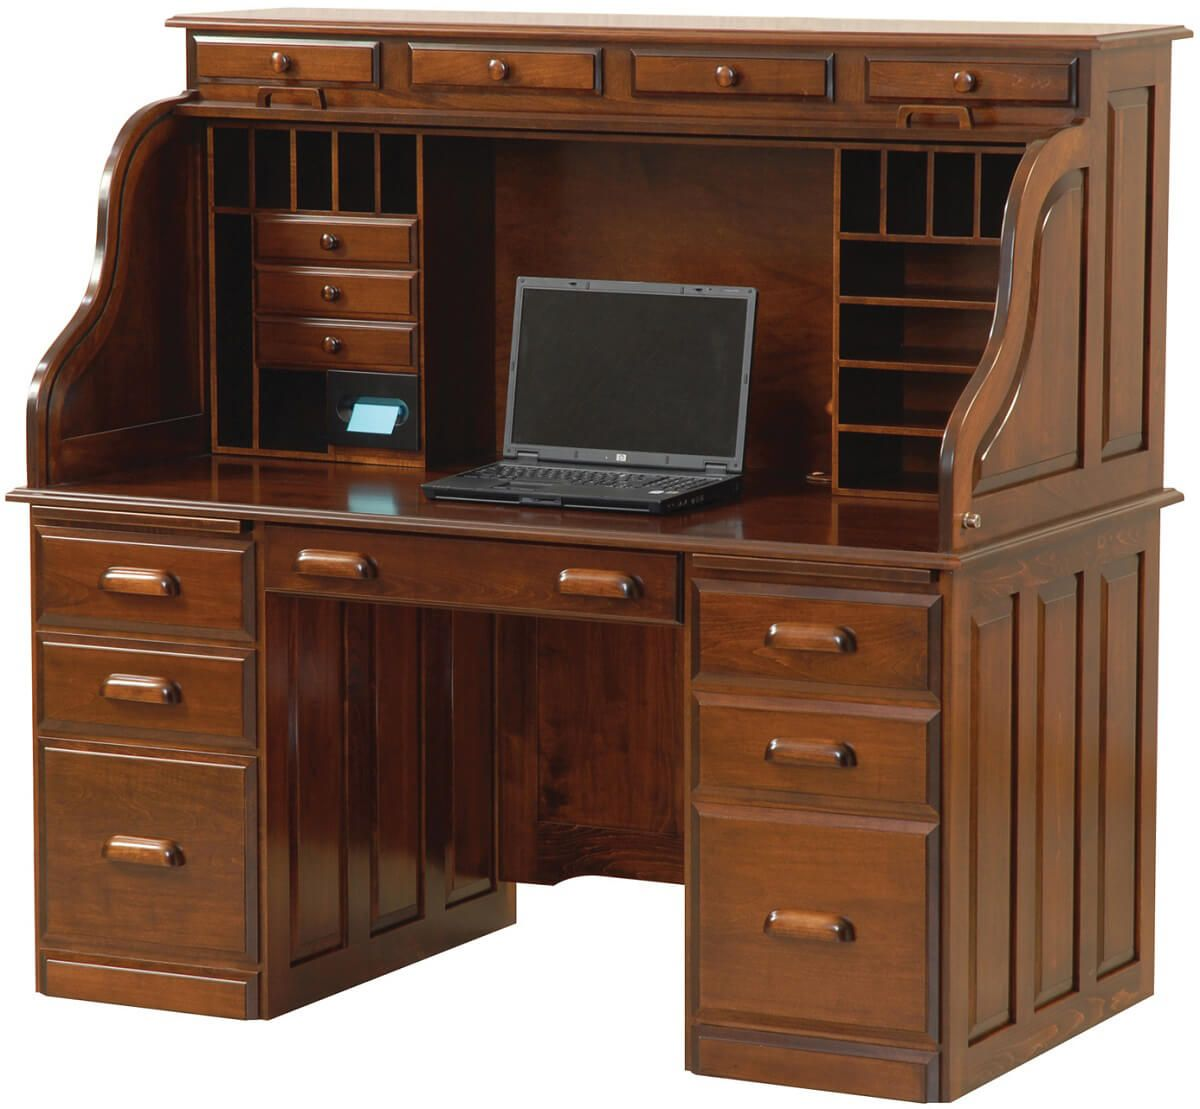 Publisher's Roll Top Desk